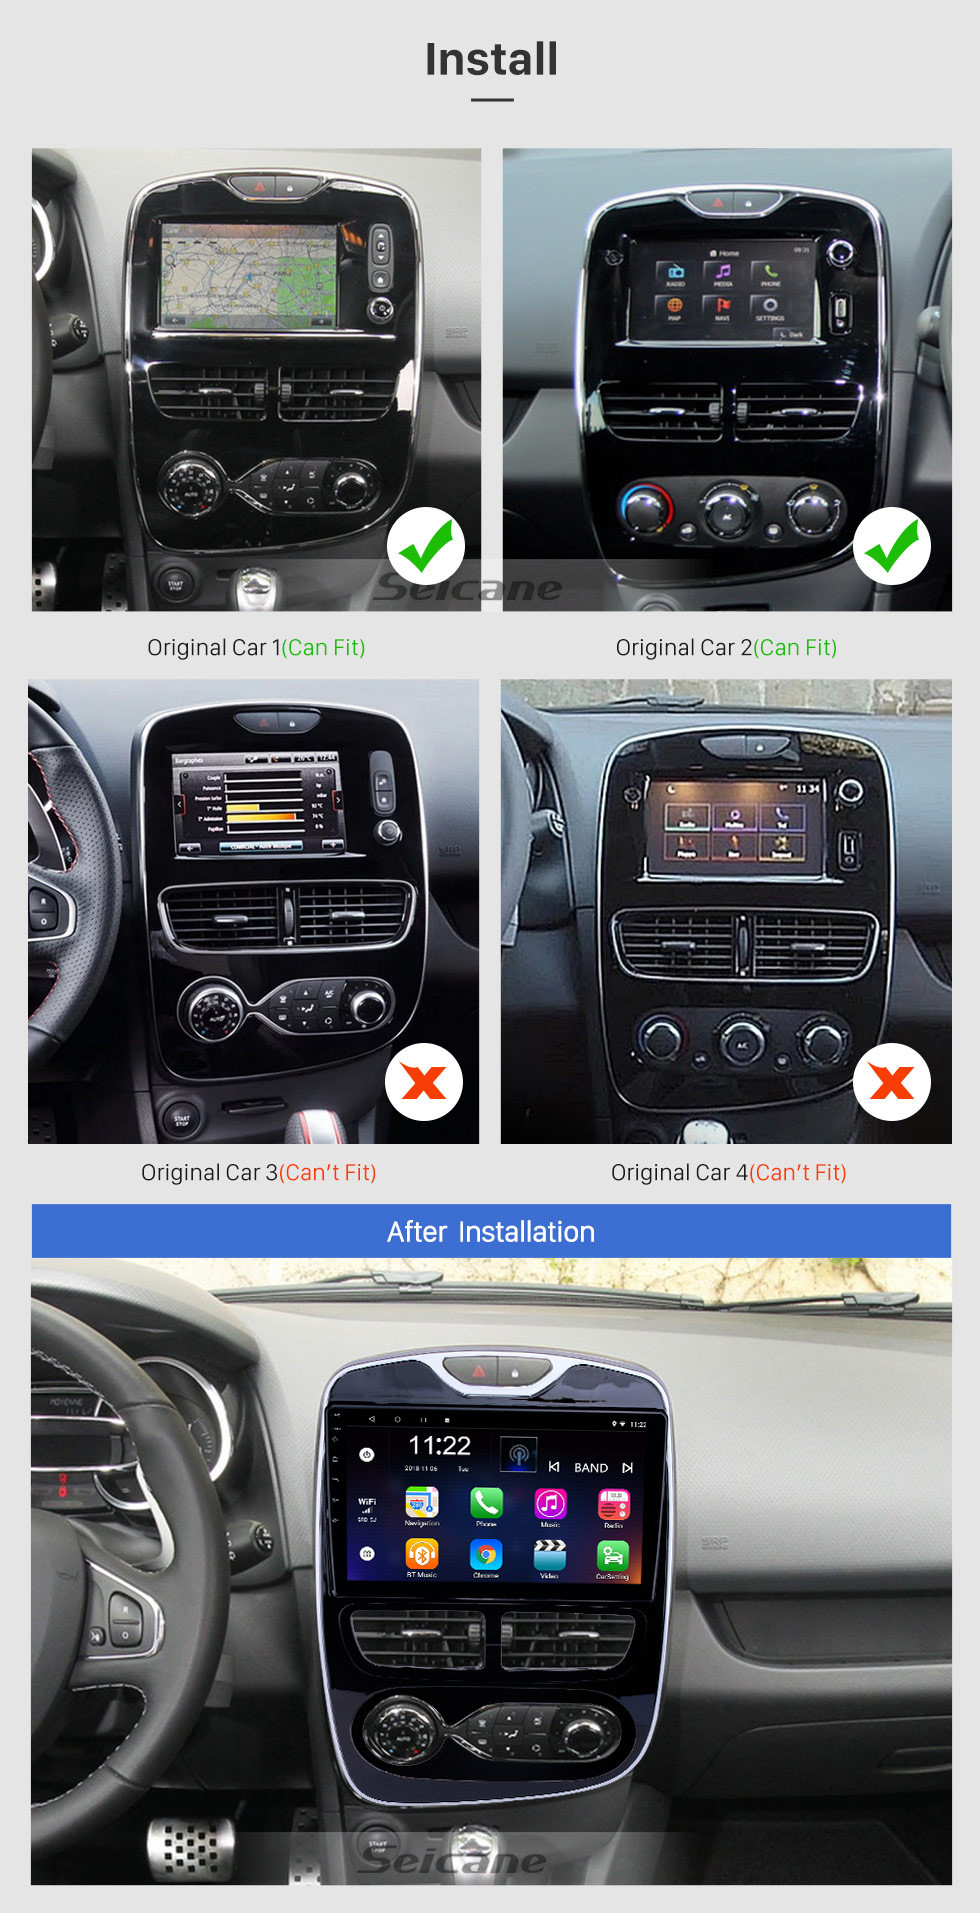 Seicane 10.1 inch Android 10.0 GPS Navigation Radio for 2012-2016 Renault Clio Digital/Analog With HD Touchscreen Bluetooth support Carplay OBD2